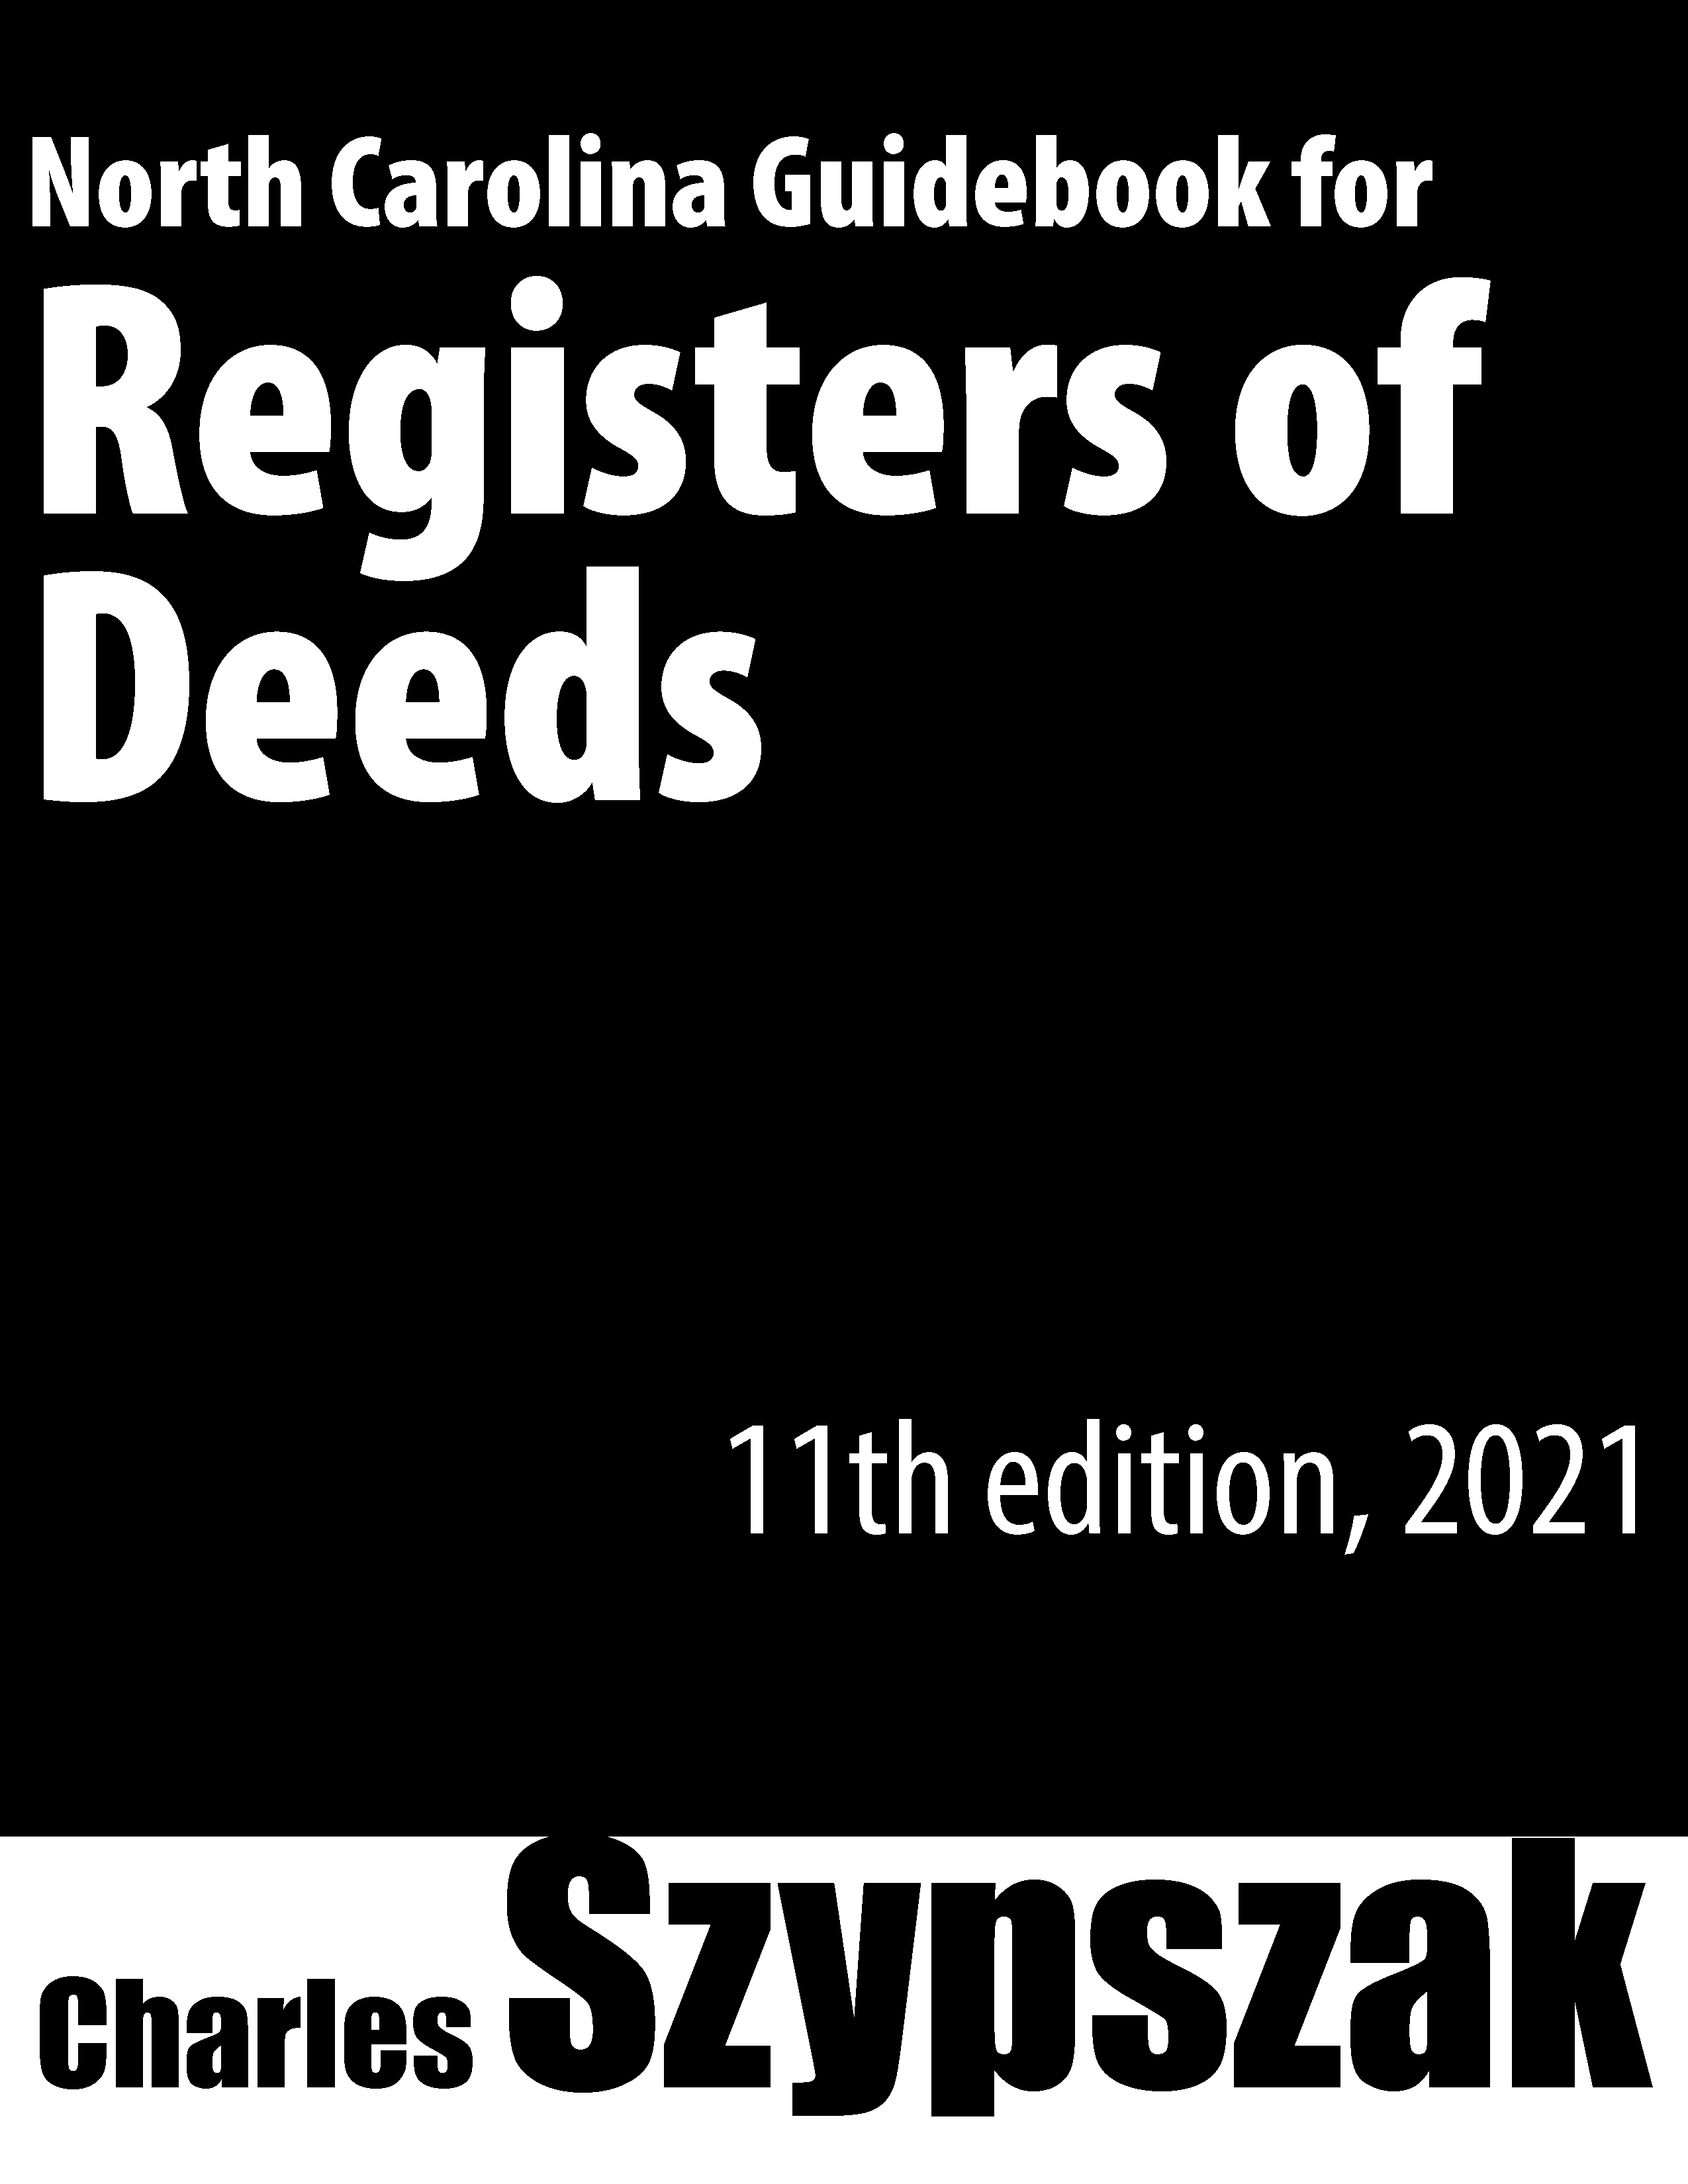 Cover image for North Carolina Guidebook for Registers of Deeds, Eleventh Edition, 2021